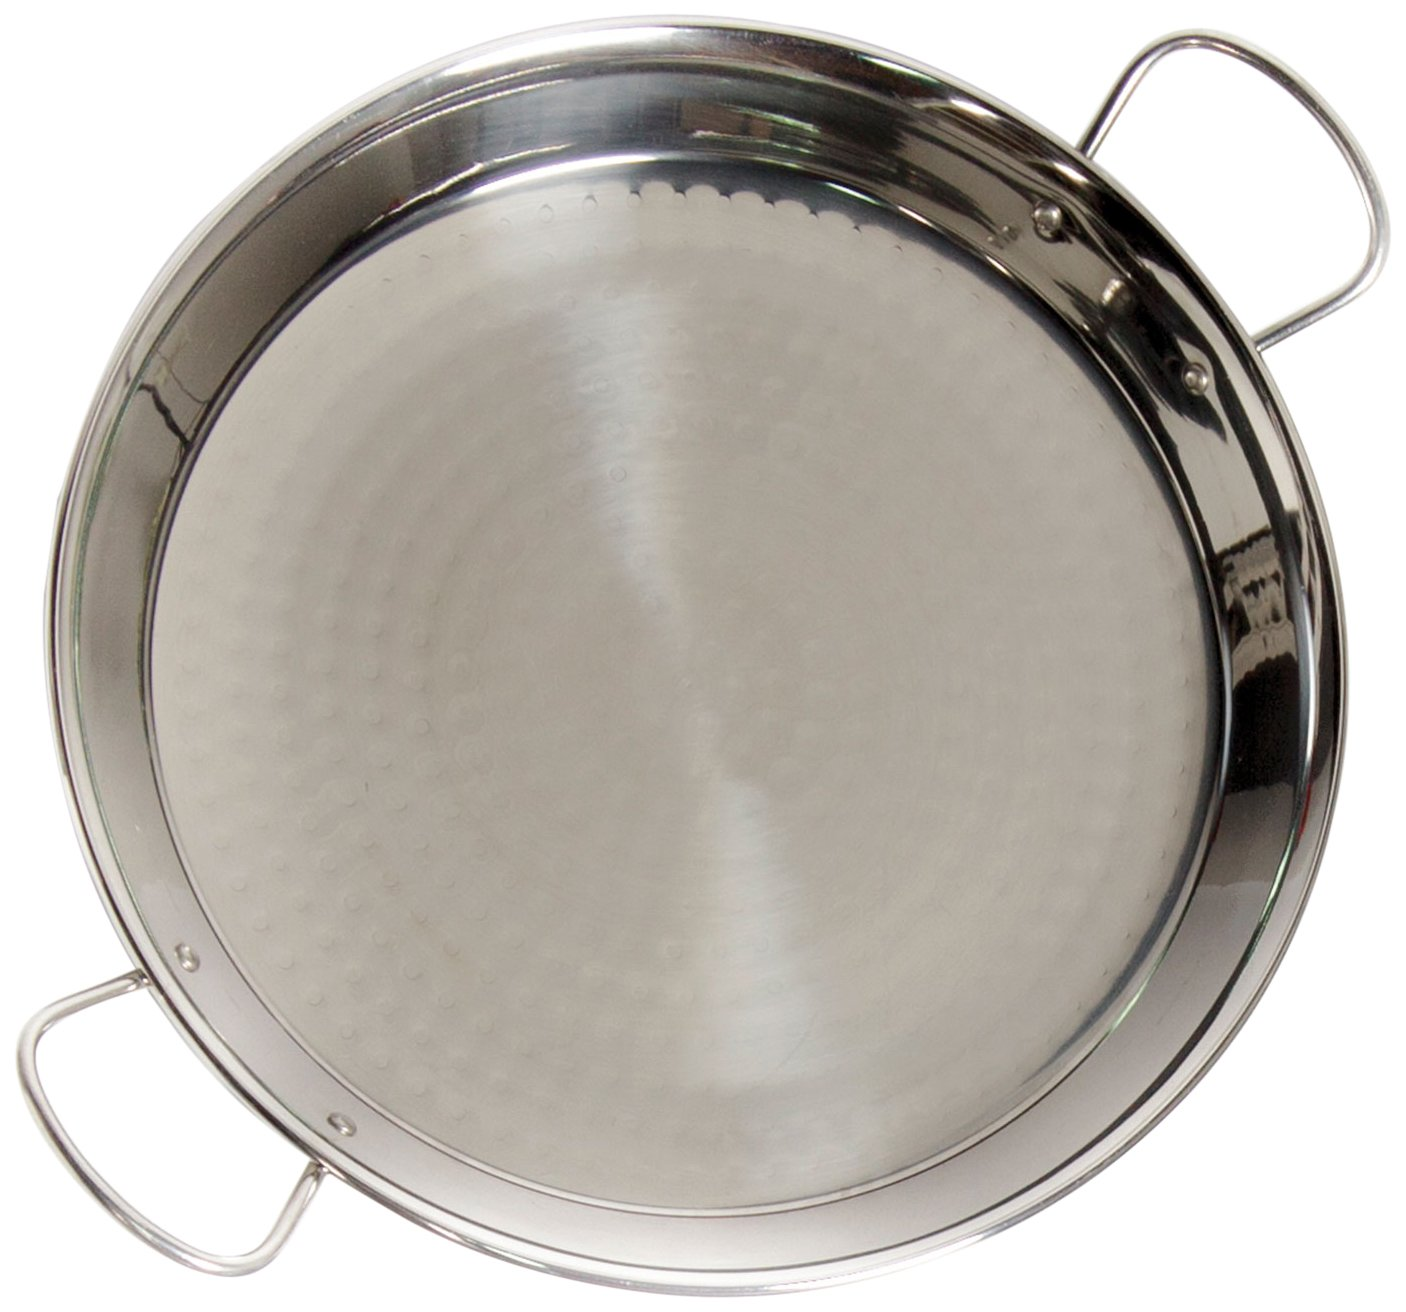 Vaello Campos Stainless Steel Paella Pan 42Cm (10 People)